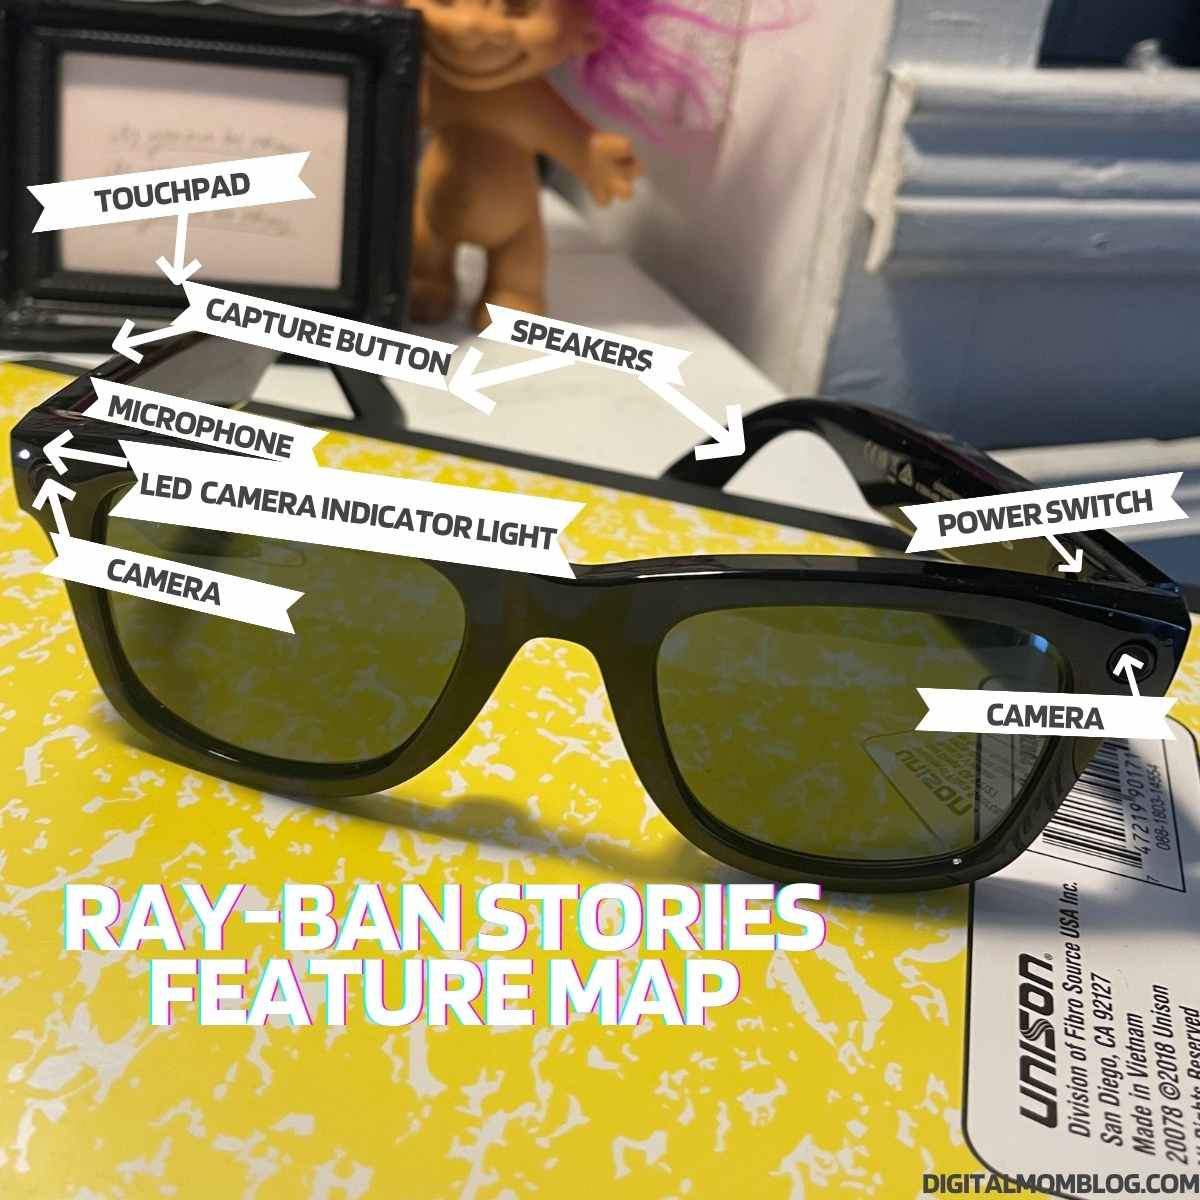 ray-ban stories features